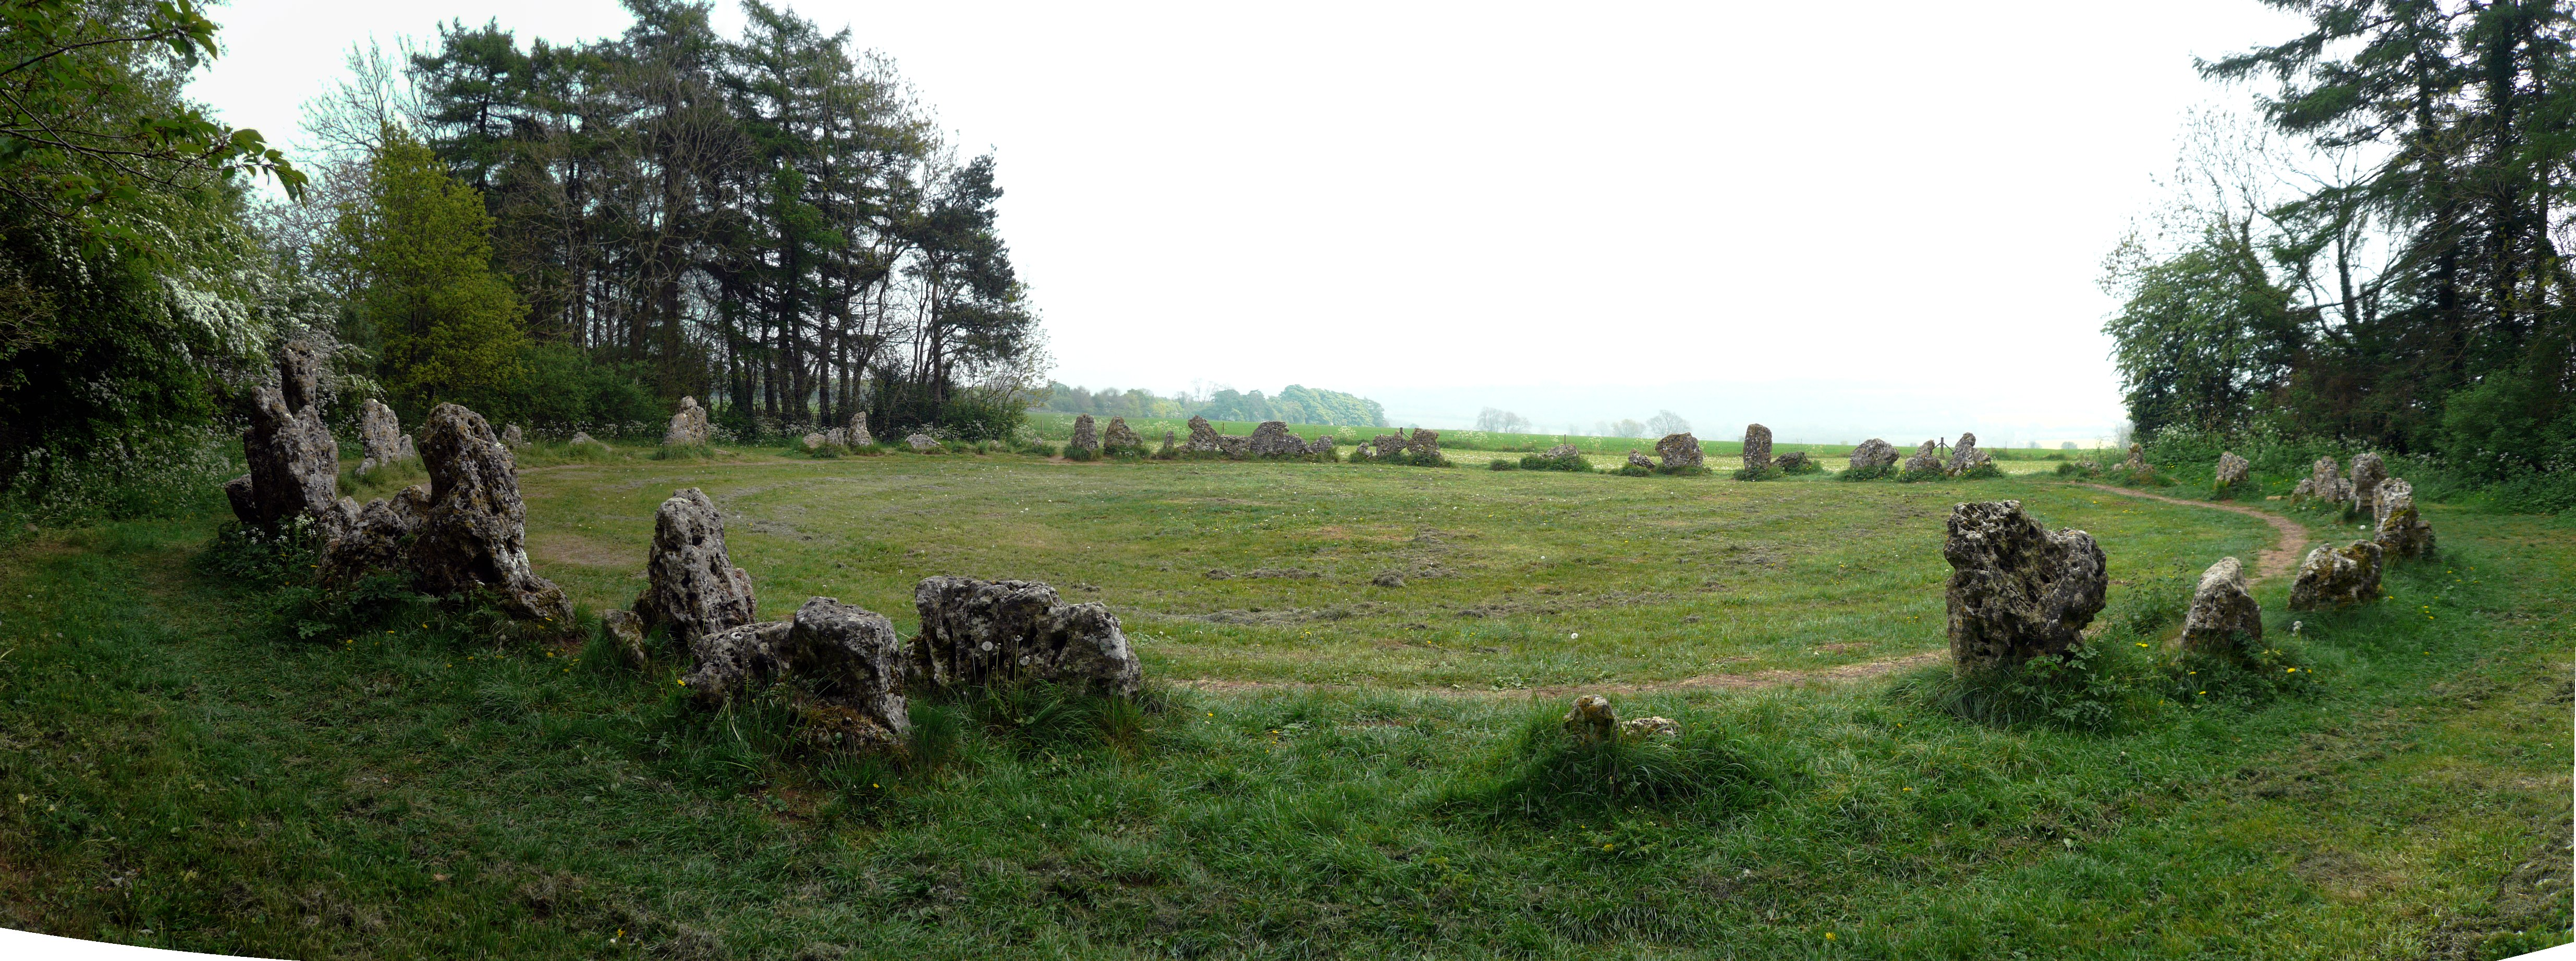 An image of the Rollright Stones, surrounded by trees.